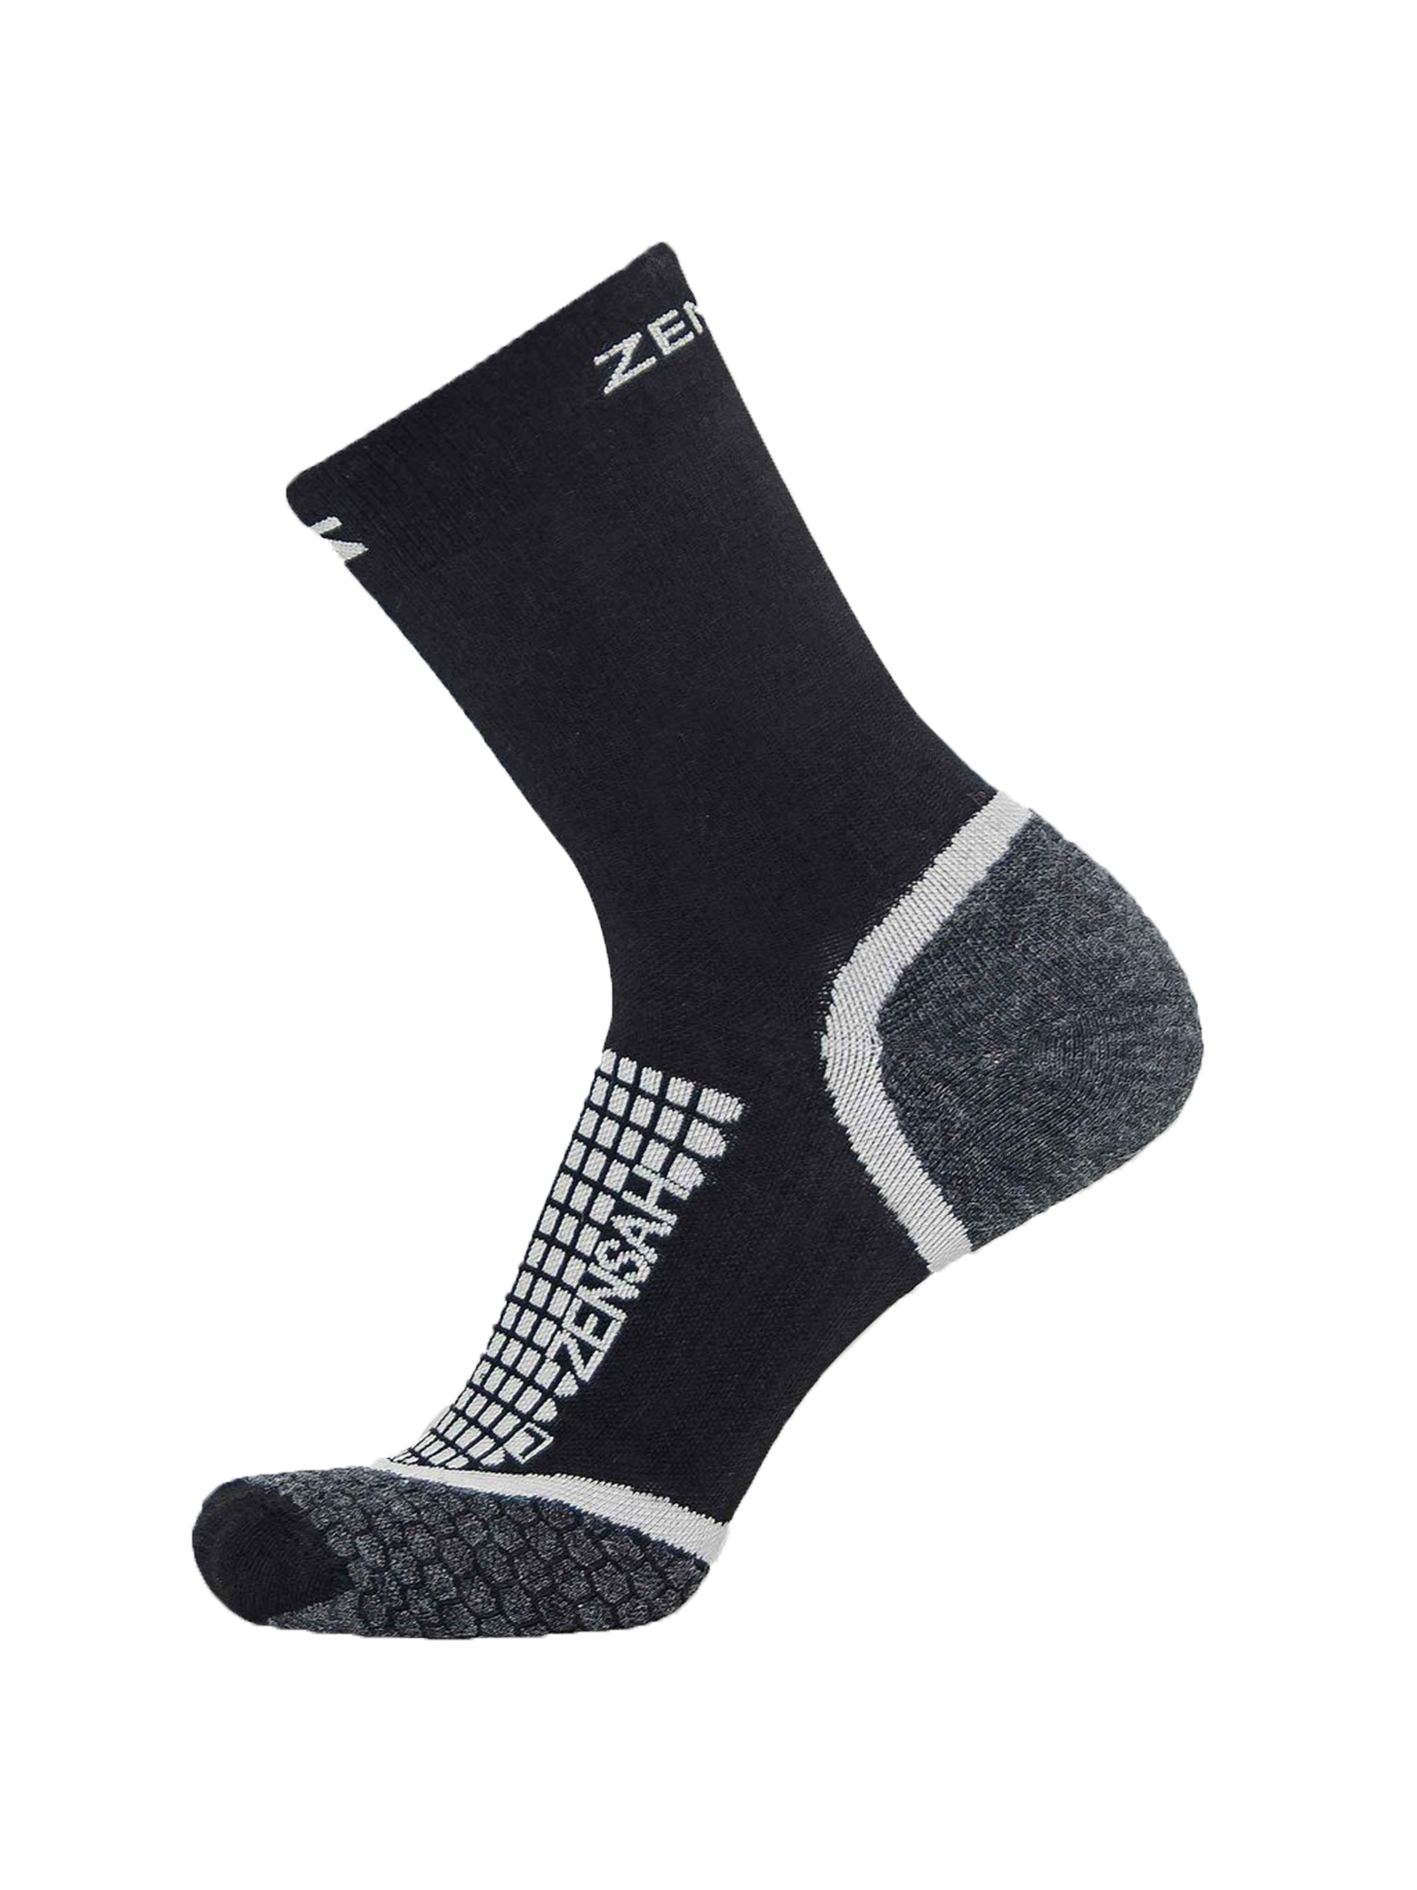 Grit Running Socks (Crew) - Black